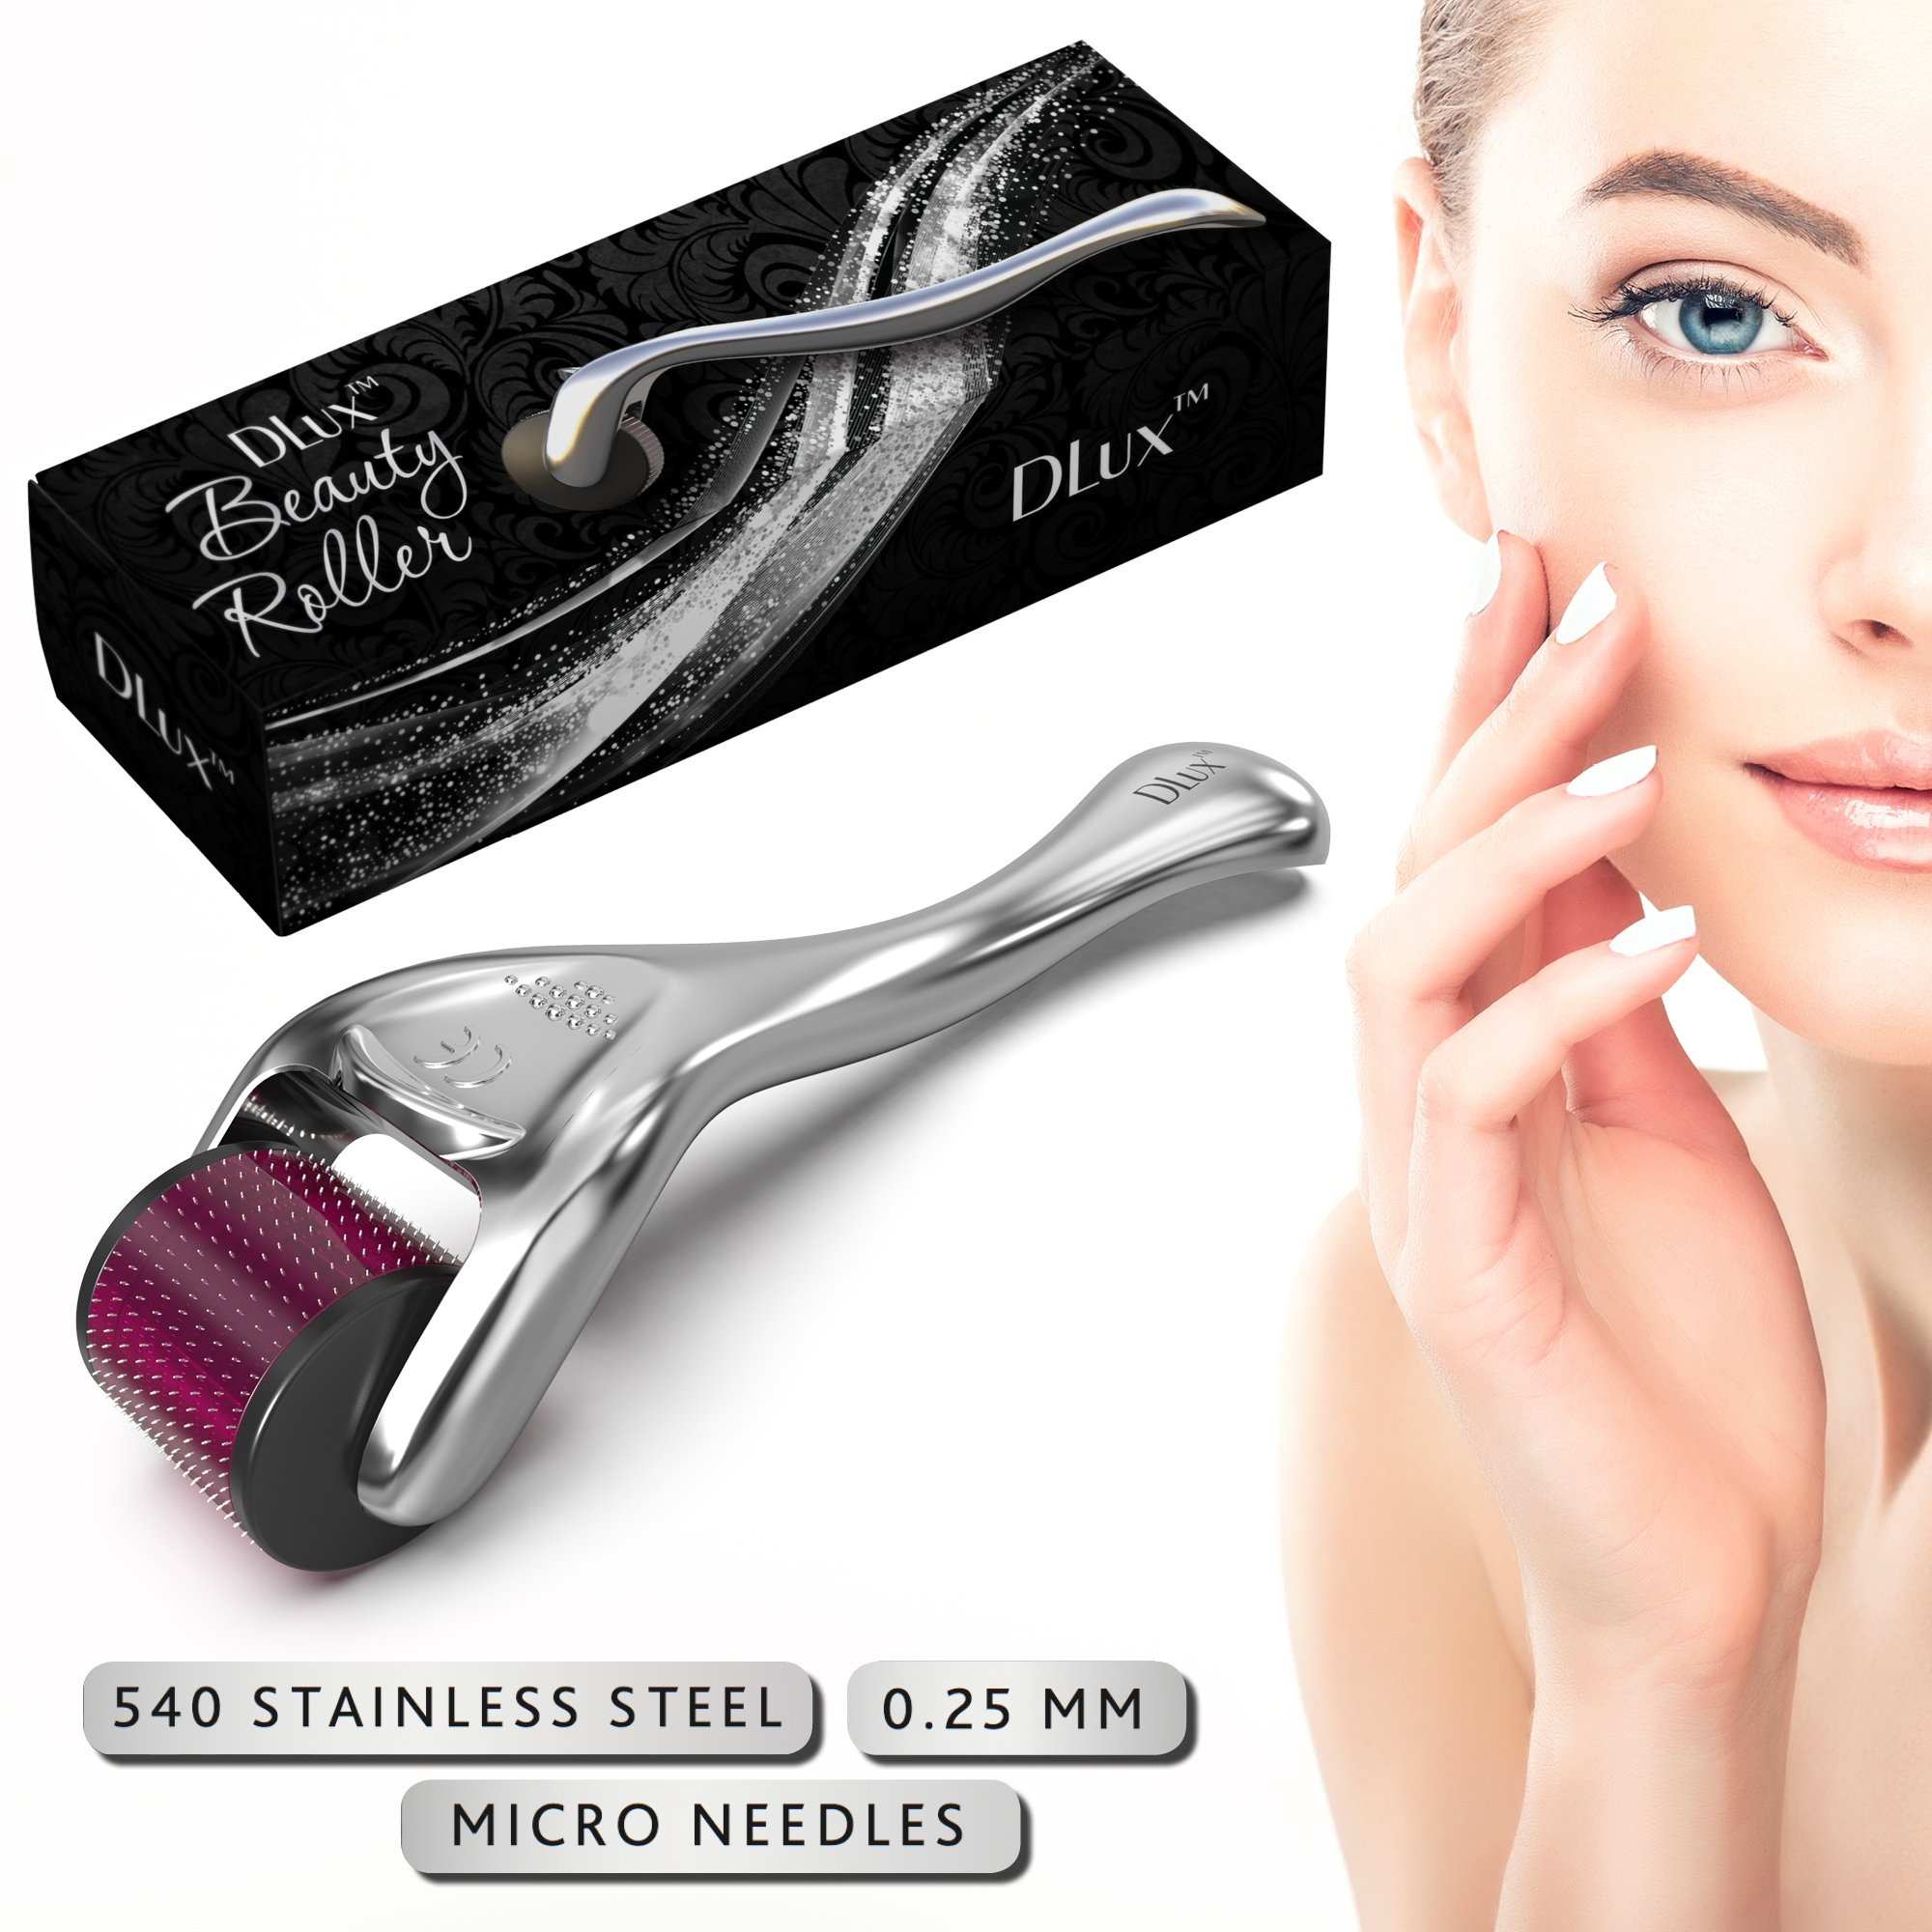 Microneedle Derma Roller with Protective Kit :: New 2018 Model :: Stainless Steel 0.25mm Microneedles :: 540 Exfoliating Needles :: Micro Roller for Face Hair and Acne ::''Deep Purple'' Beauty Roller